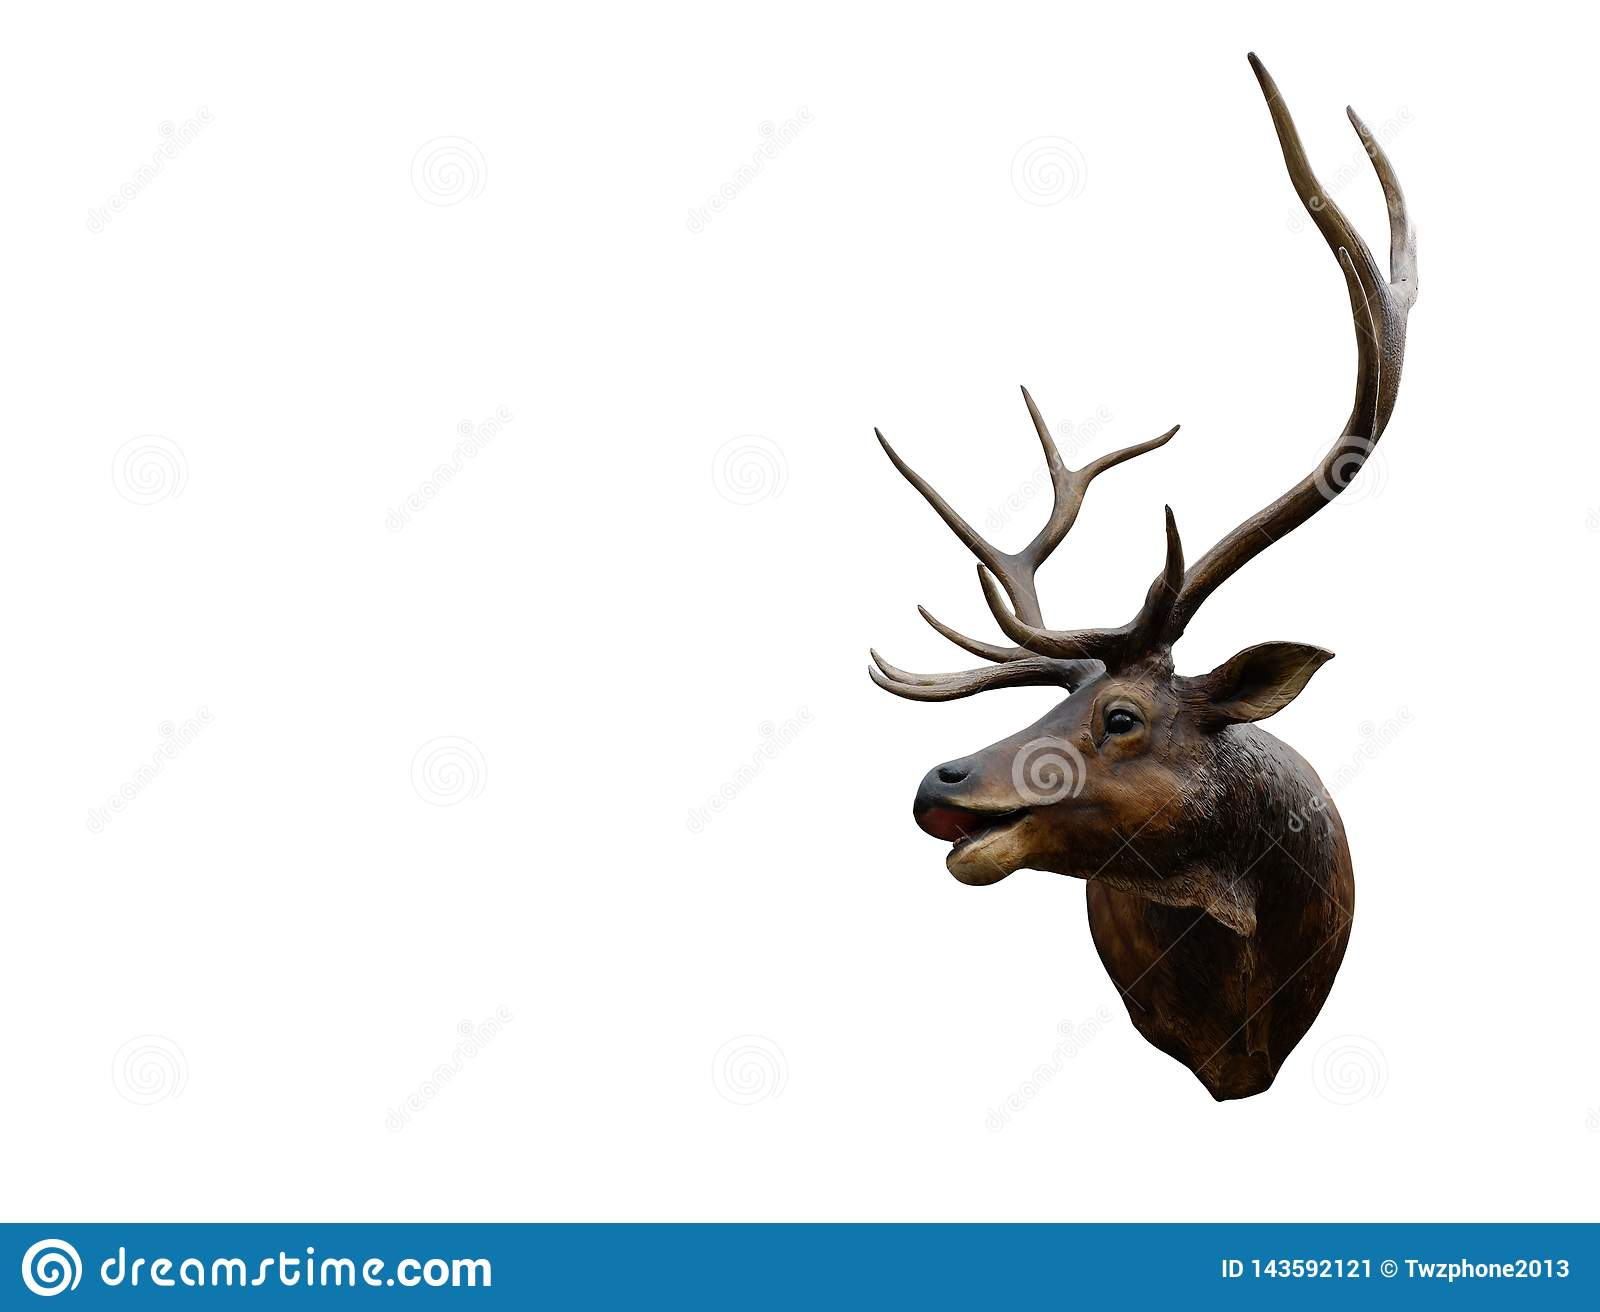 Closeup brown deer on white background,object, copy space